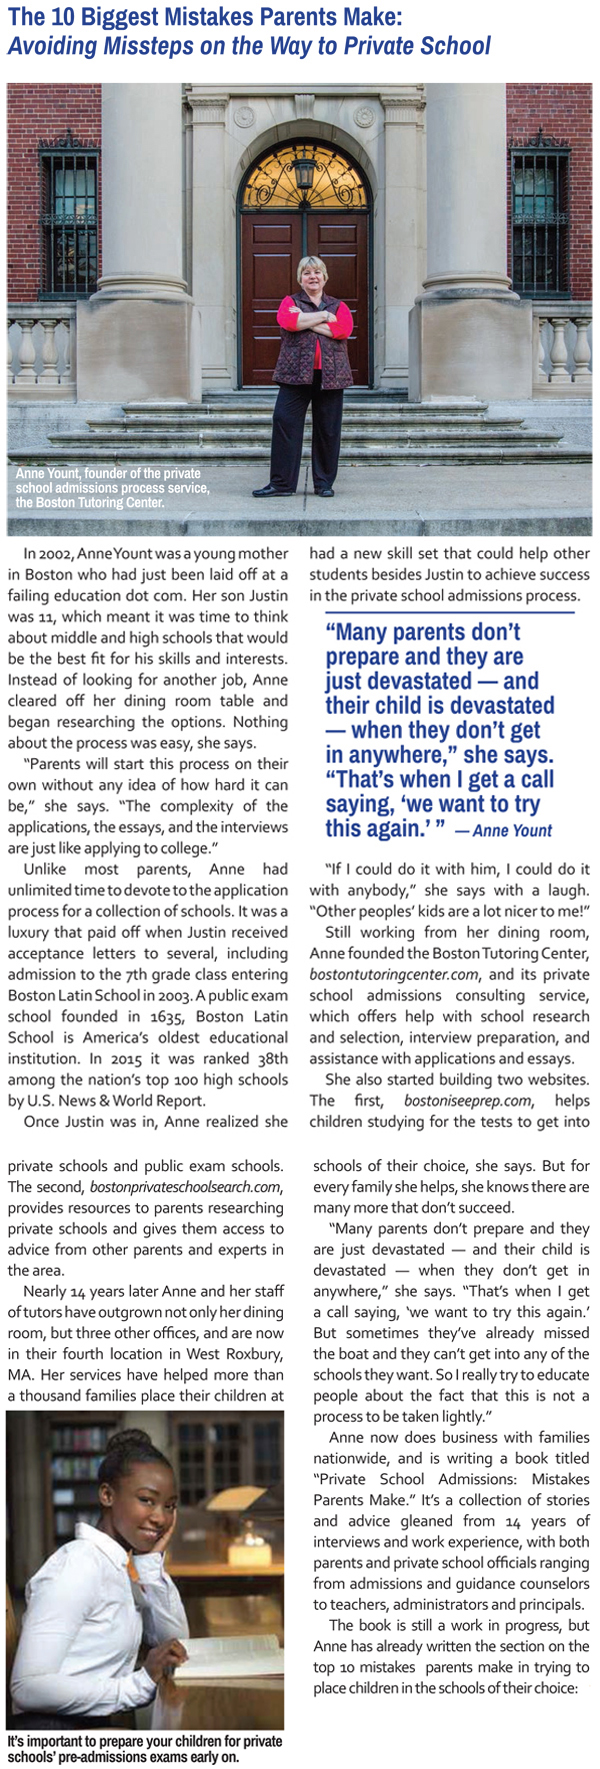 Ms. Anne's interview with The Washington Post about mistakes parents make in private  school admission